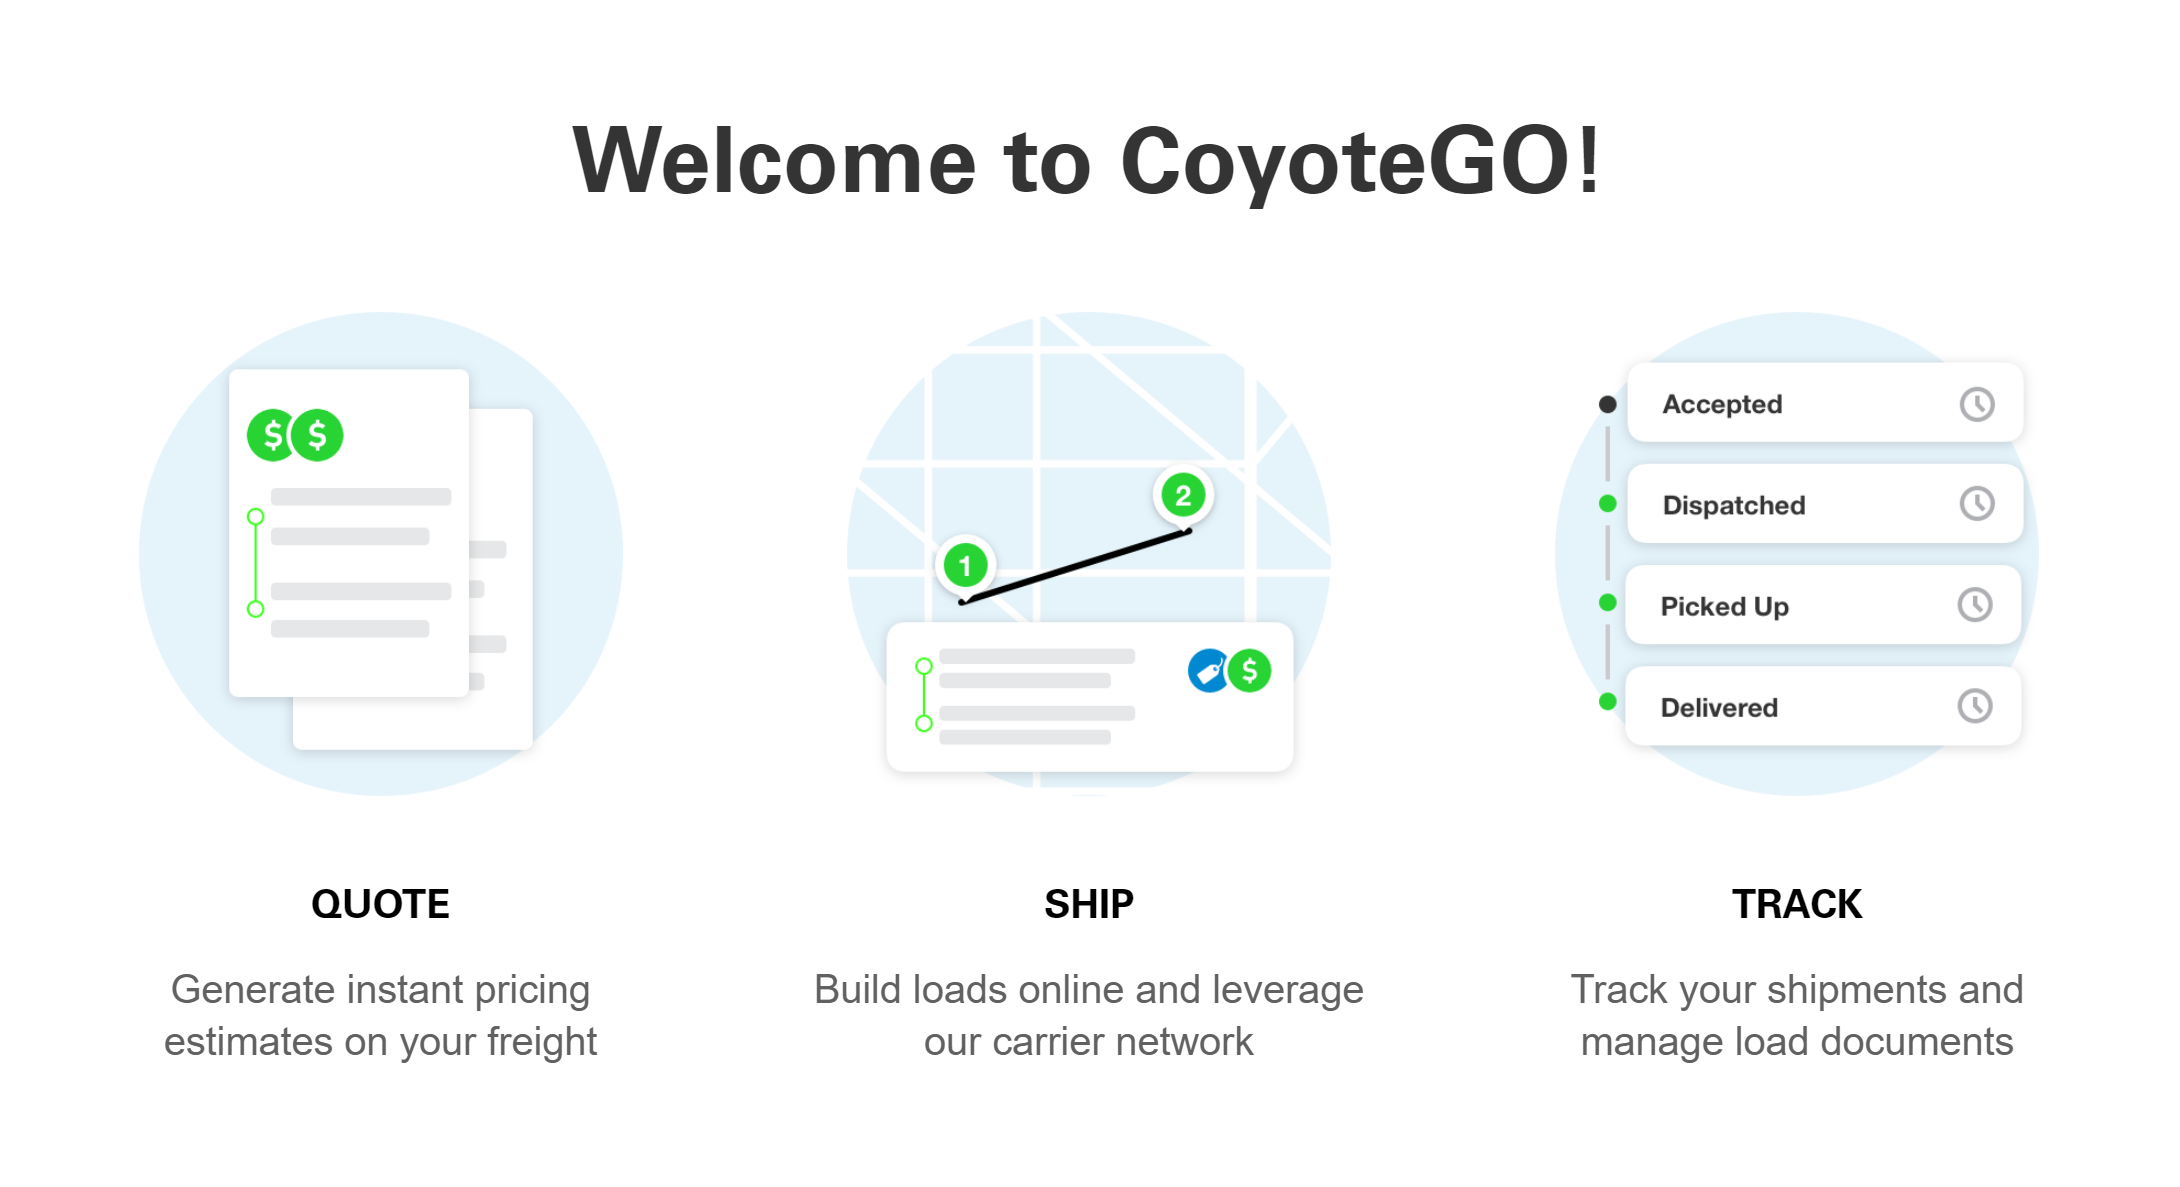 Welcome to CoyoteGO